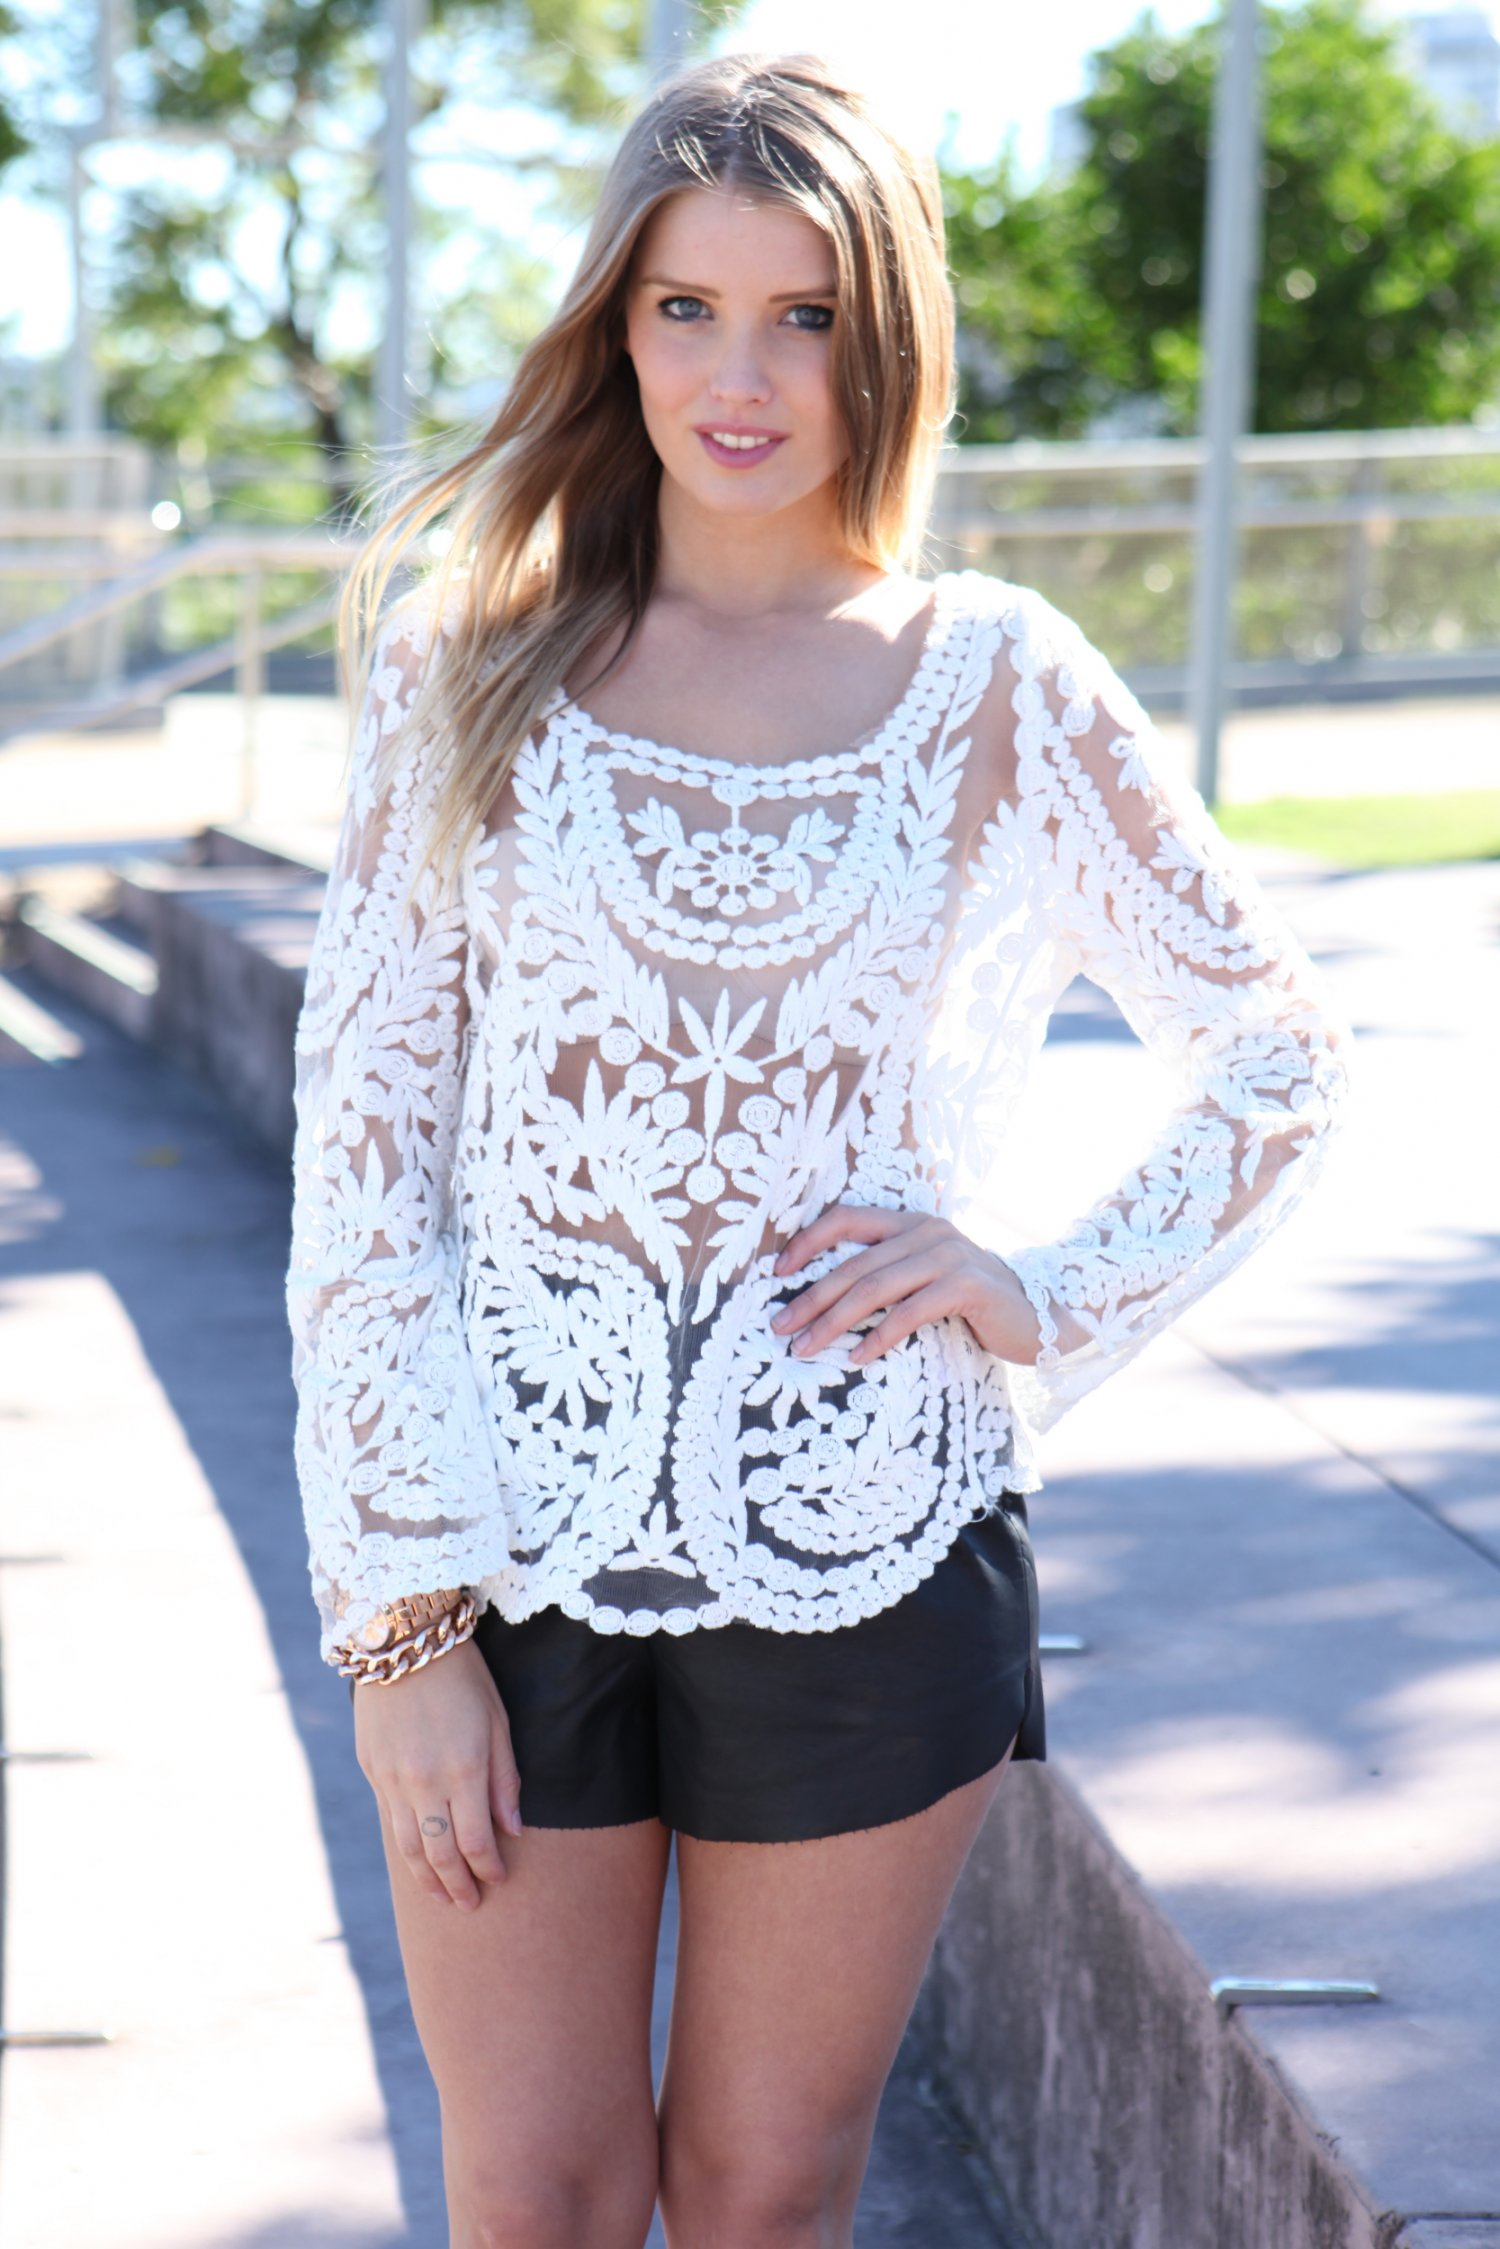 White Three-Quarter/Long Sleeve Top - White Lace & Mesh Long | UsTrendy